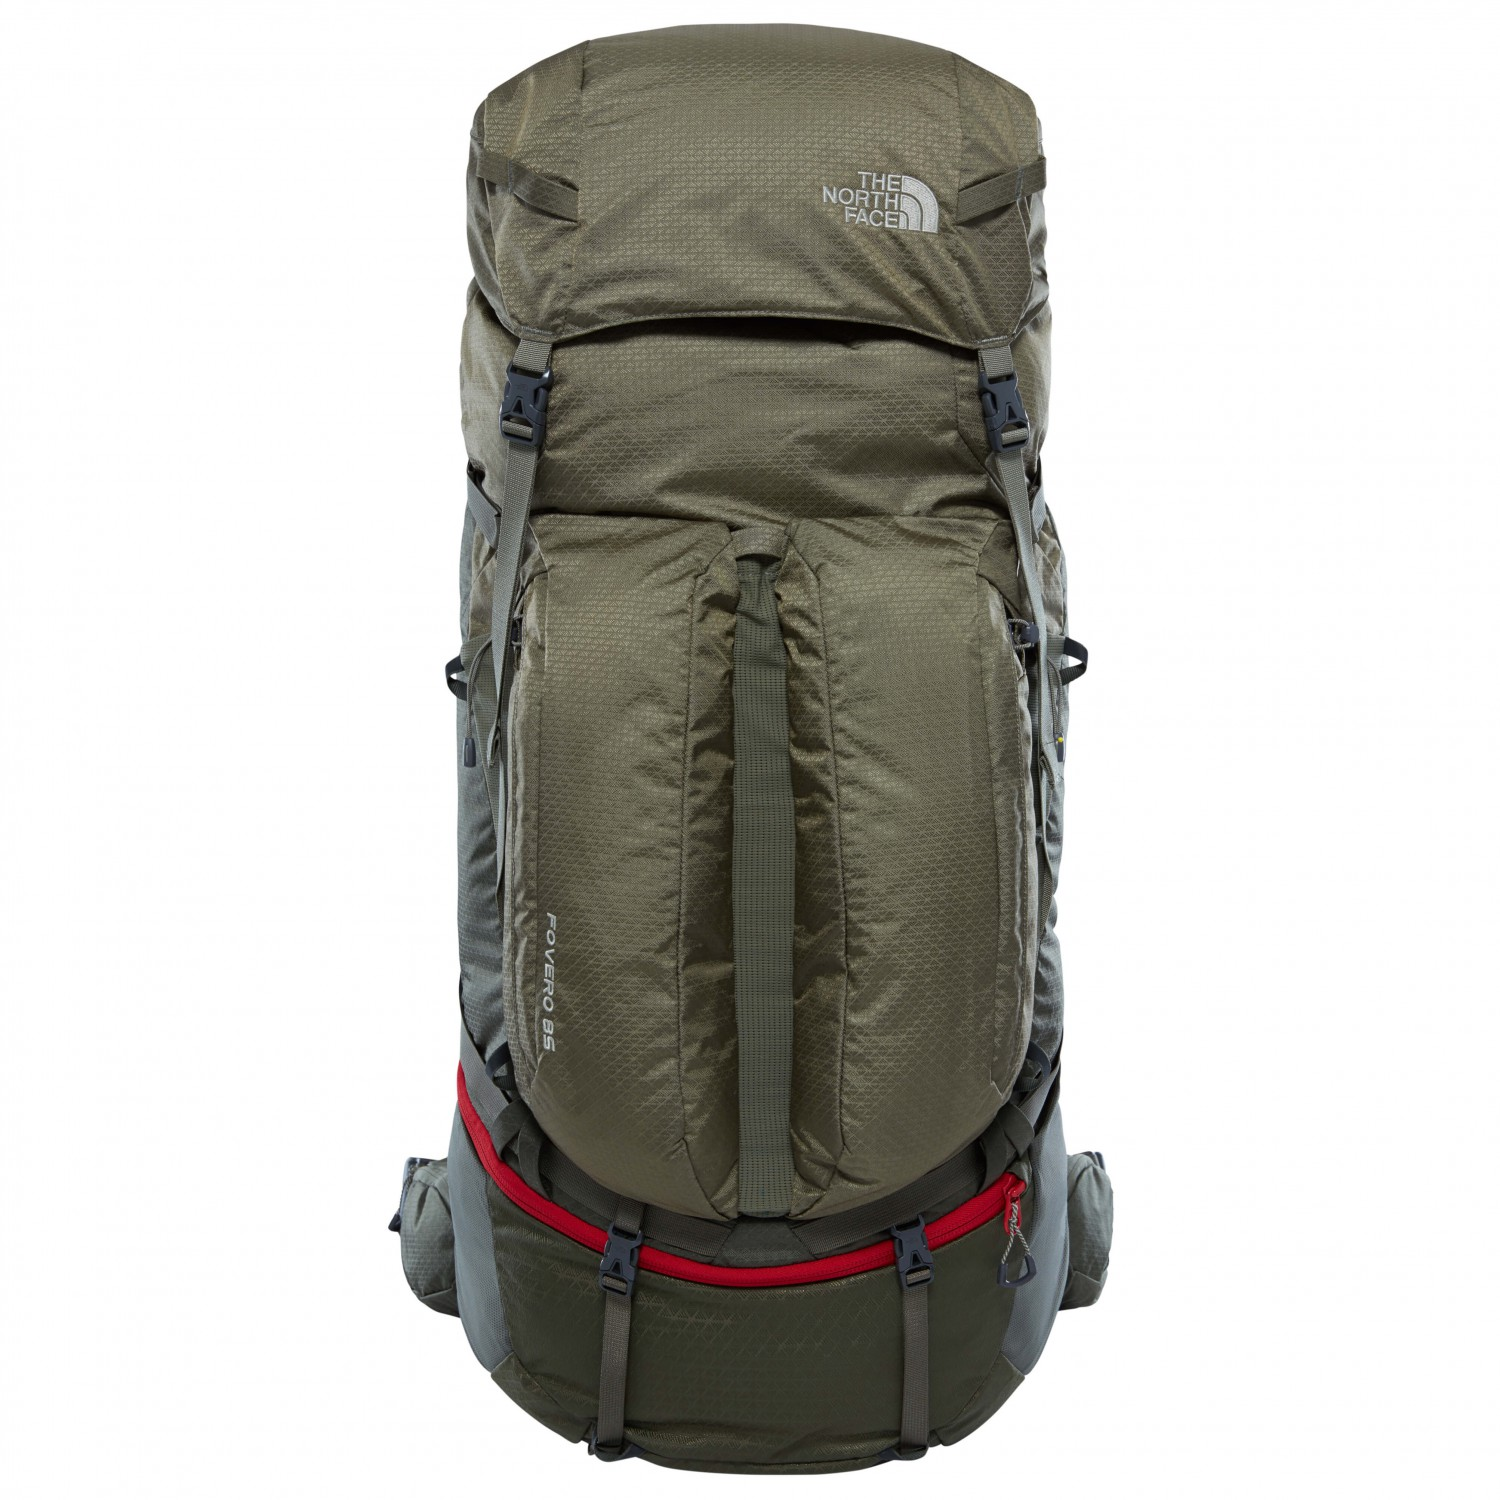 The North Face Fovero 85 Trekking Backpack